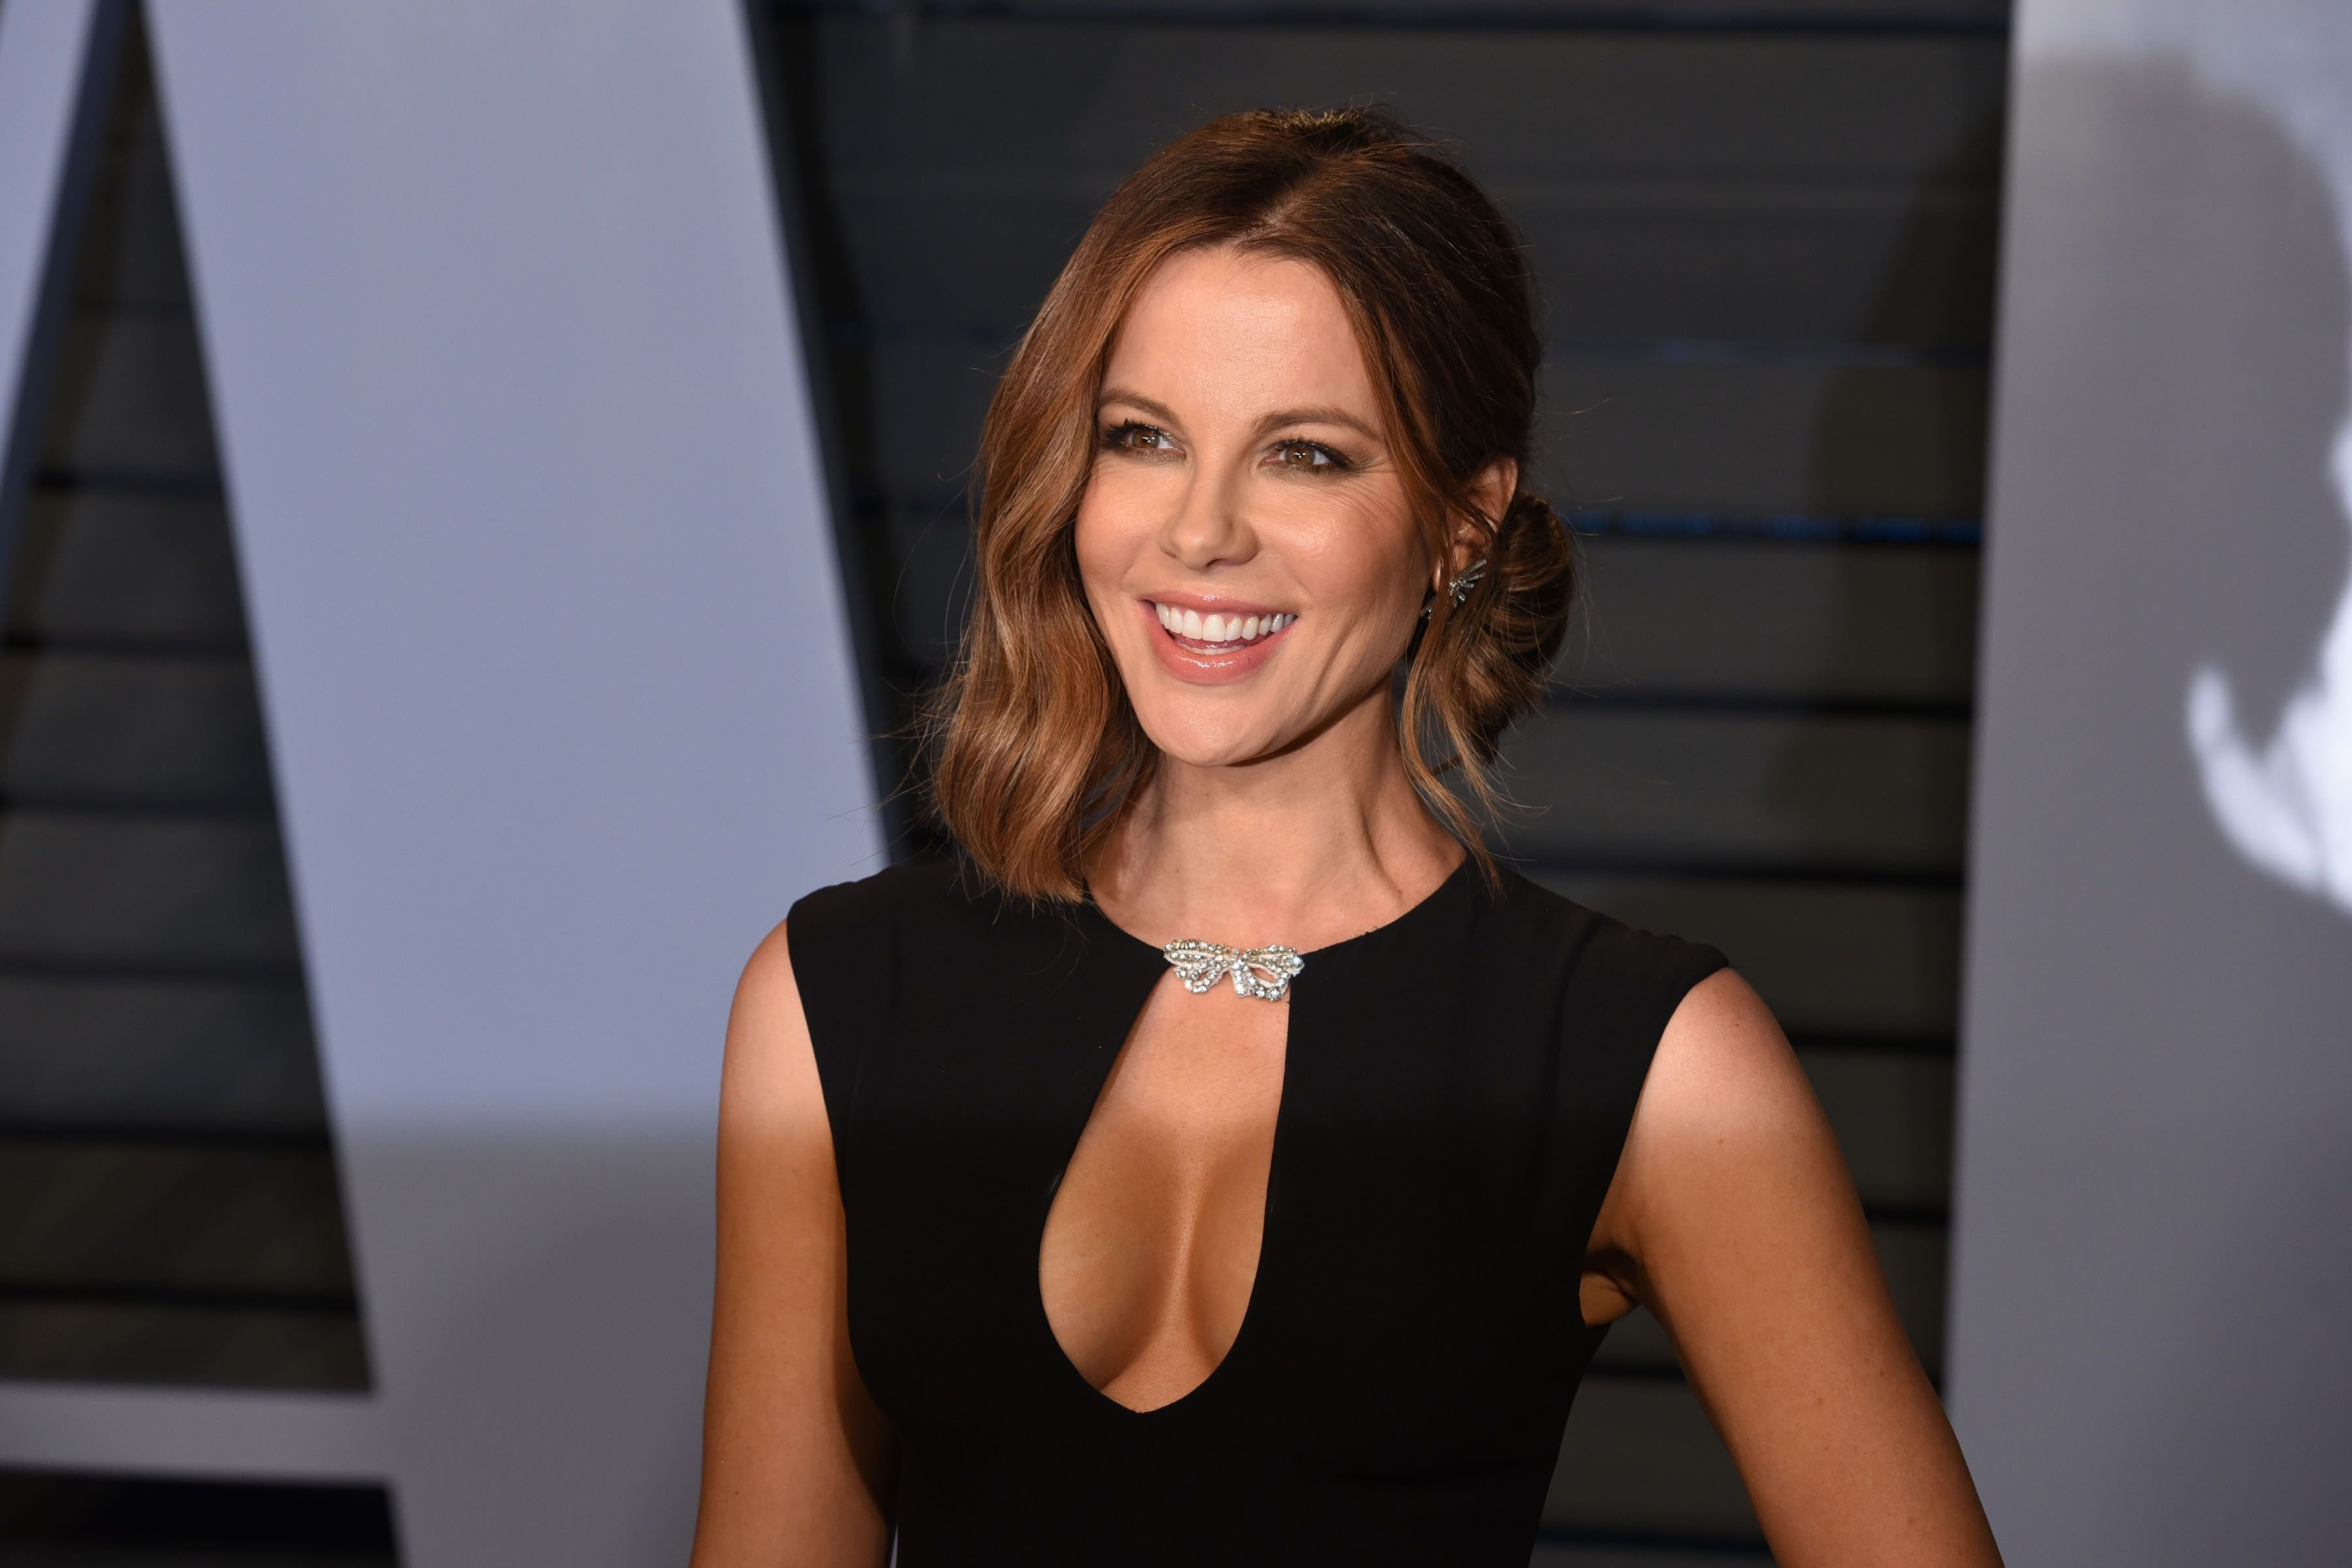 Kate Beckinsale at the 2018 Vanity Fair Oscar Party in Beverly Hills   Source: Getty Images